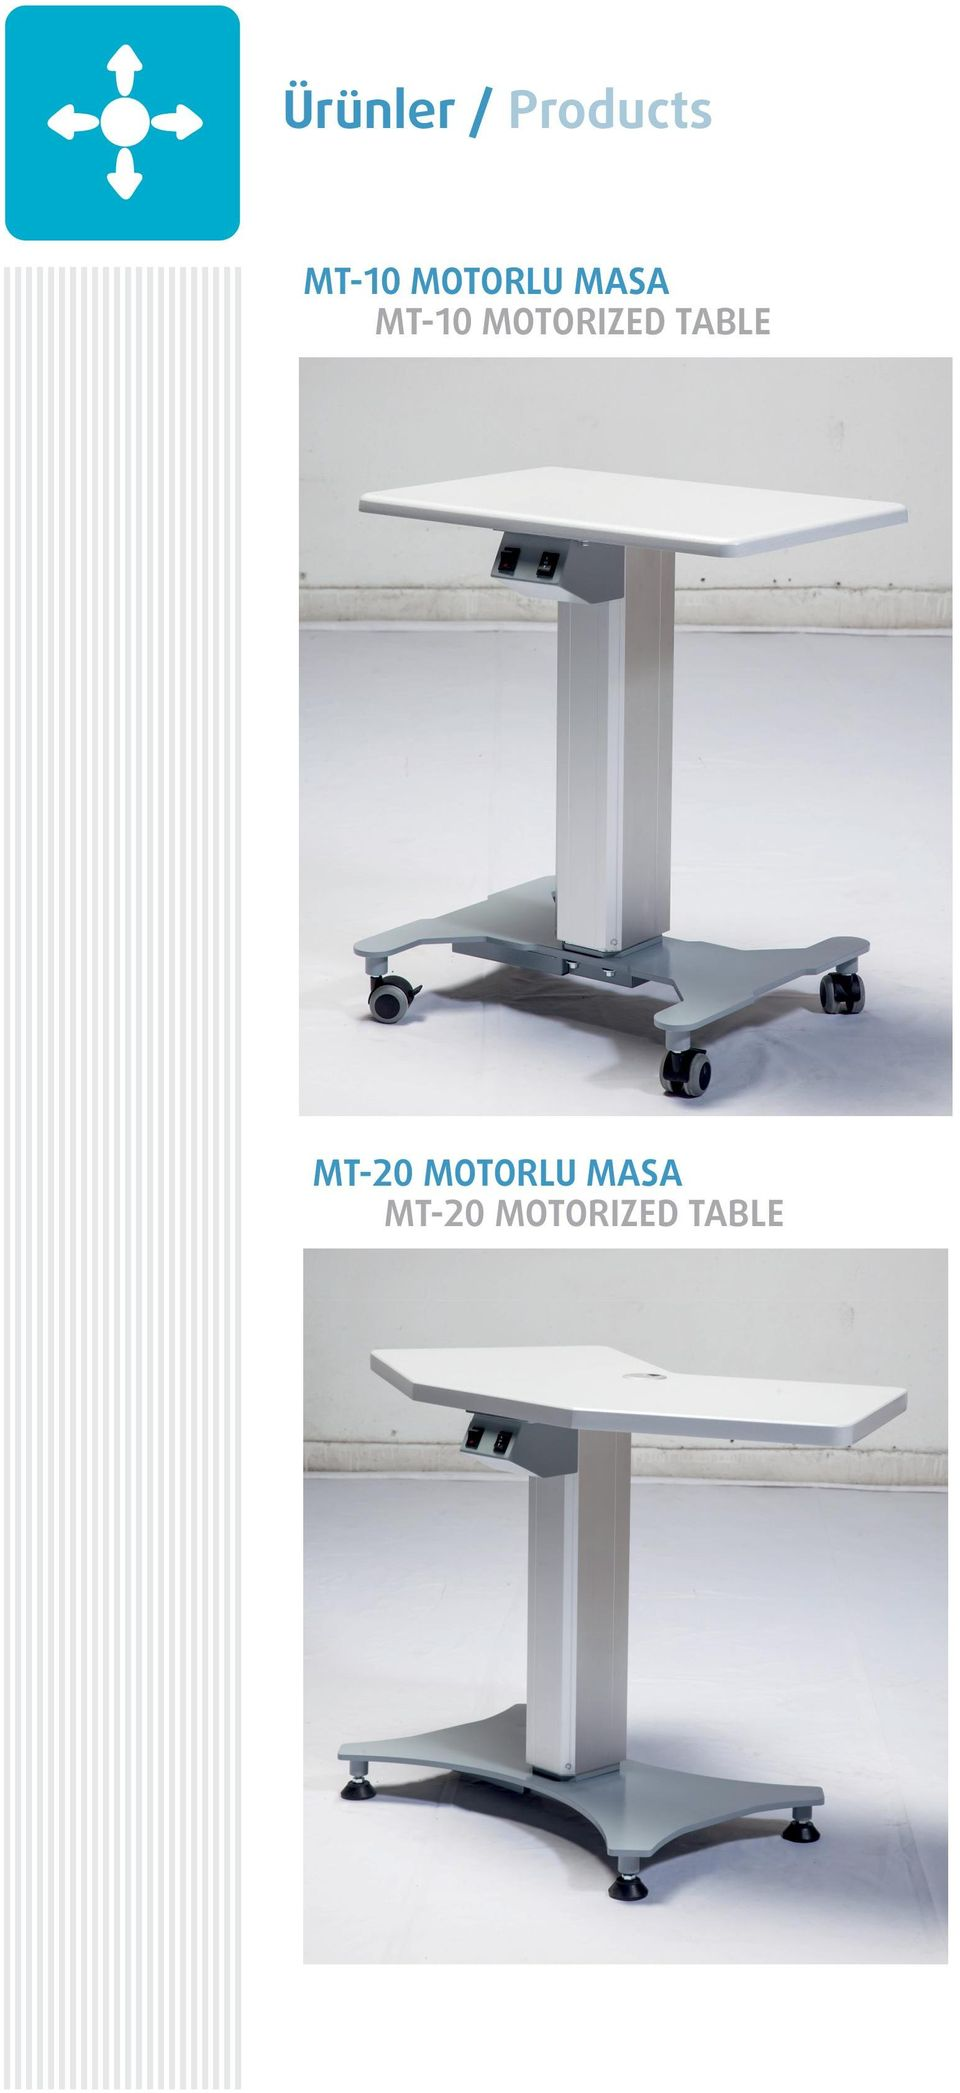 MOTORIZED TABLE MT-20